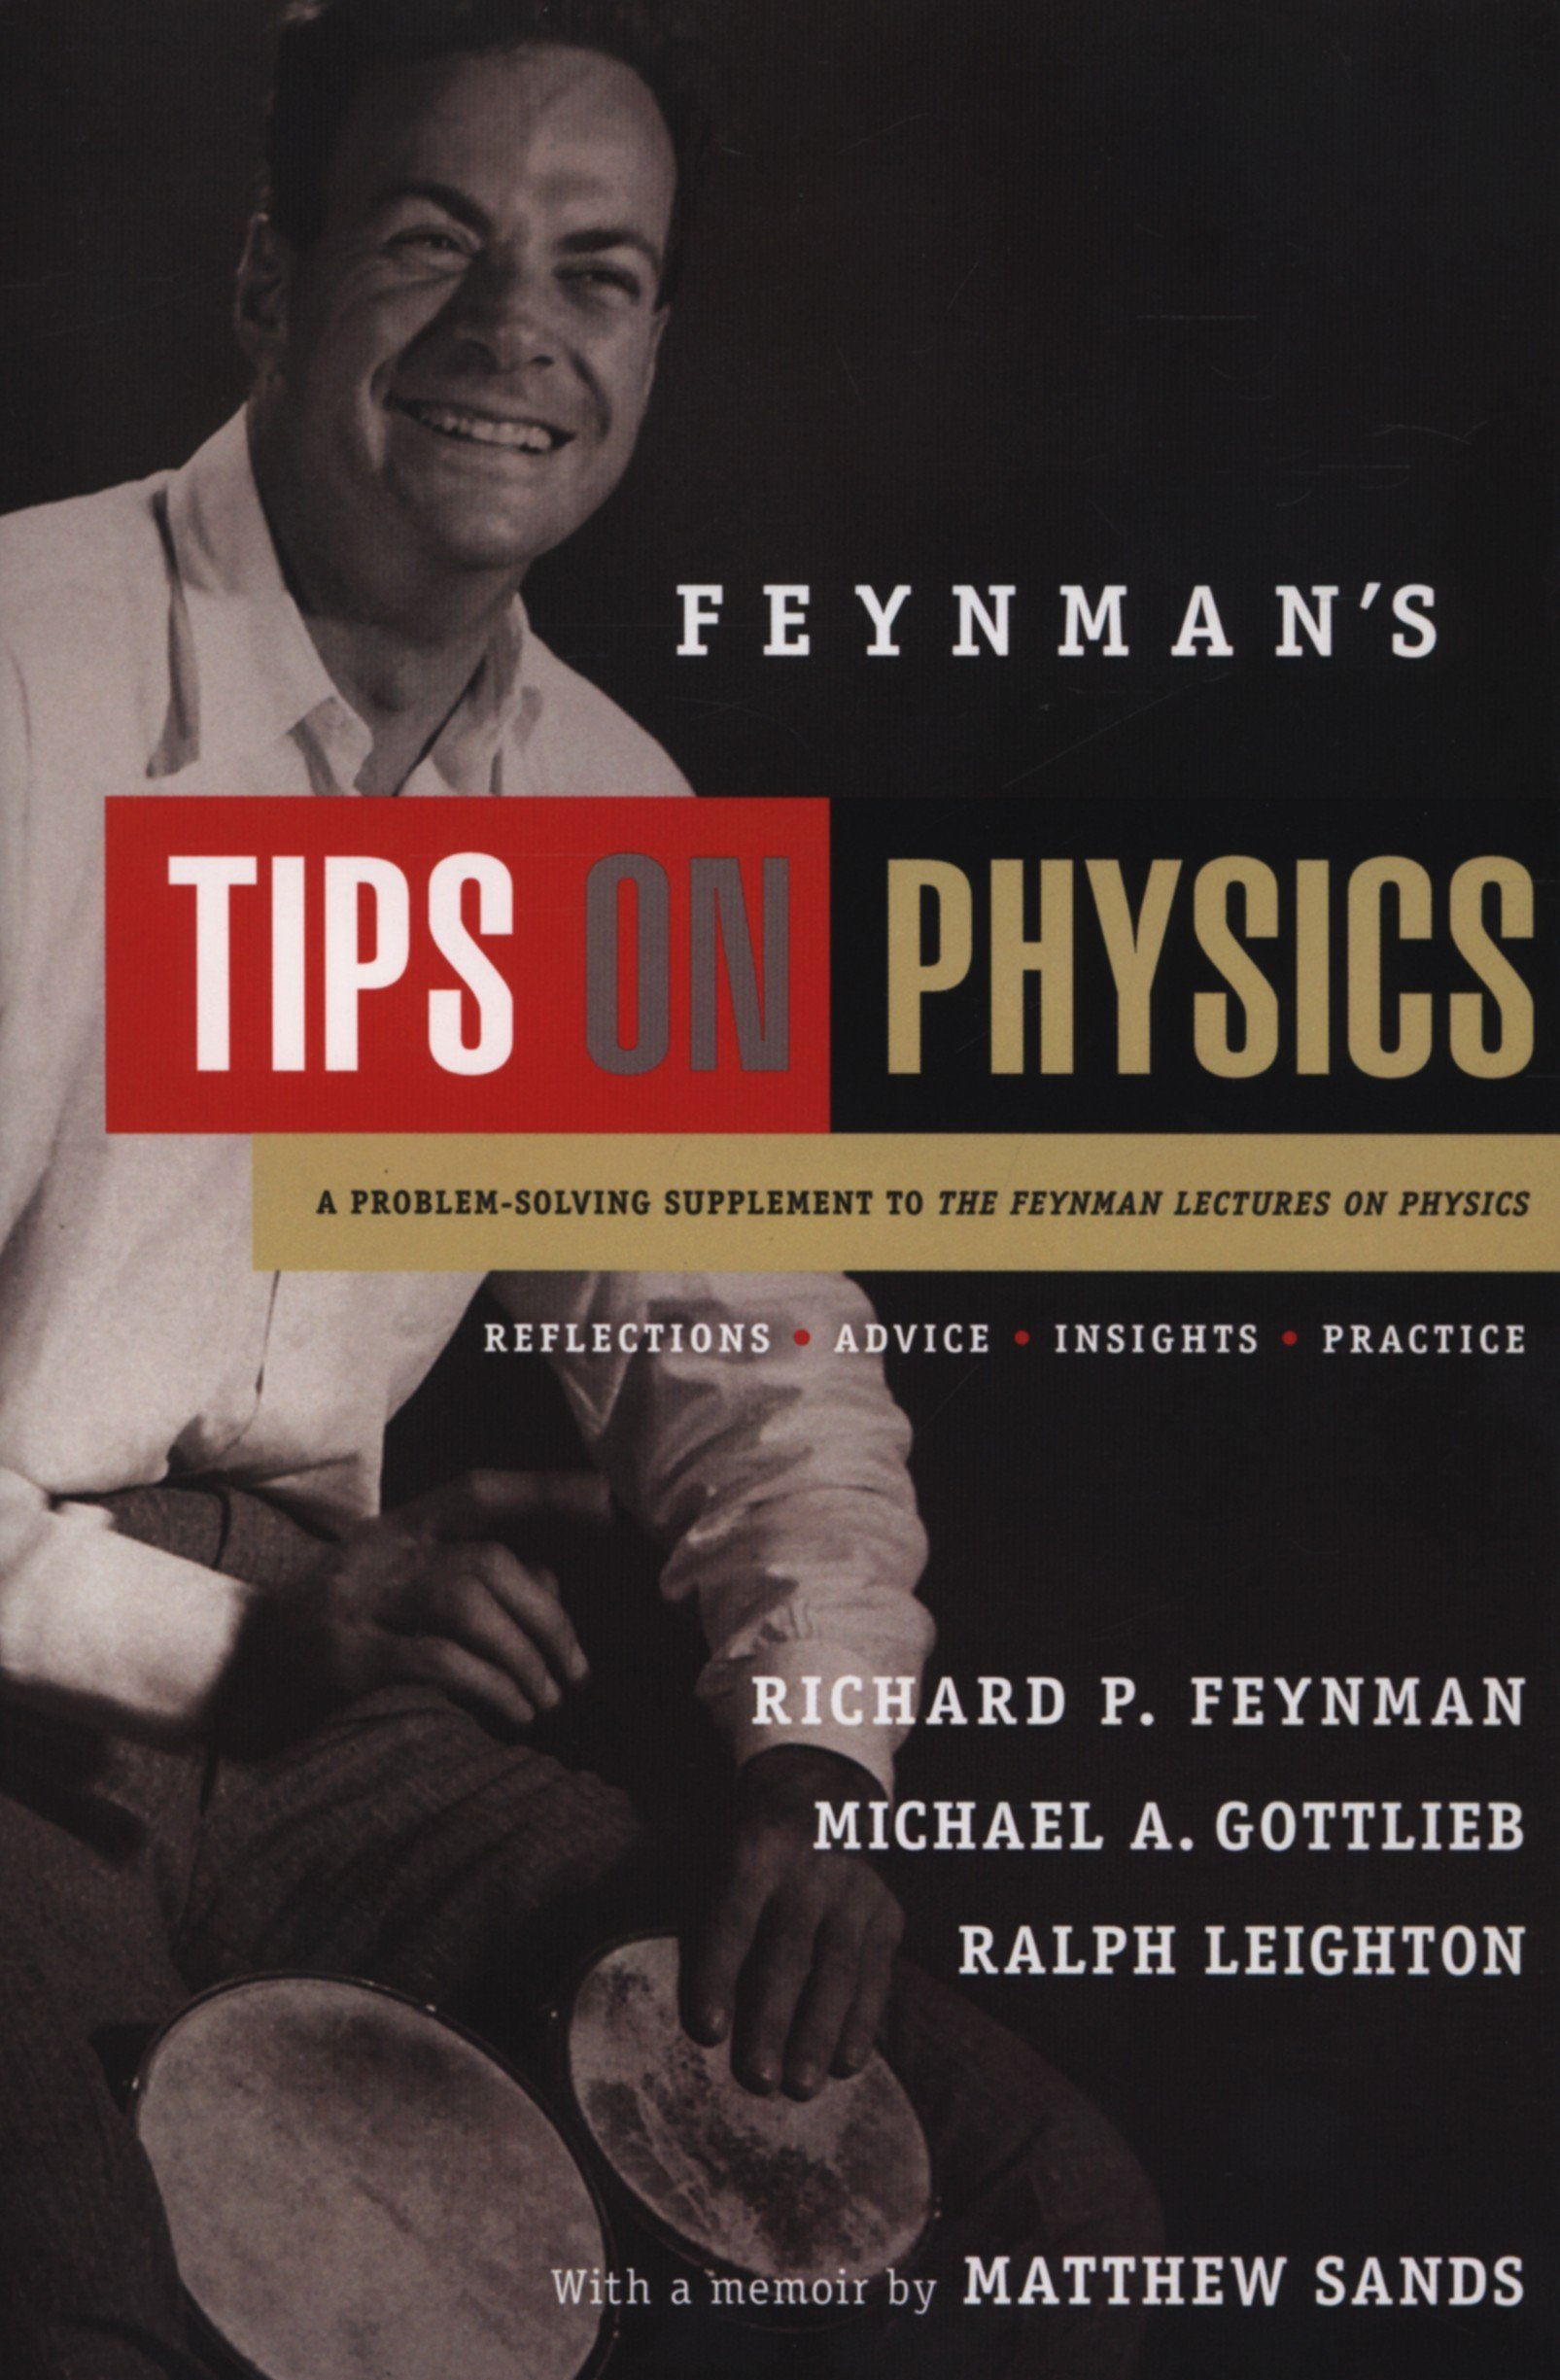 feynman s tips on physics reflections advice insights practice feynman s tips on physics reflections advice insights practice co uk michael gottlieb richard feynman ralph leighton 9780465027972 books